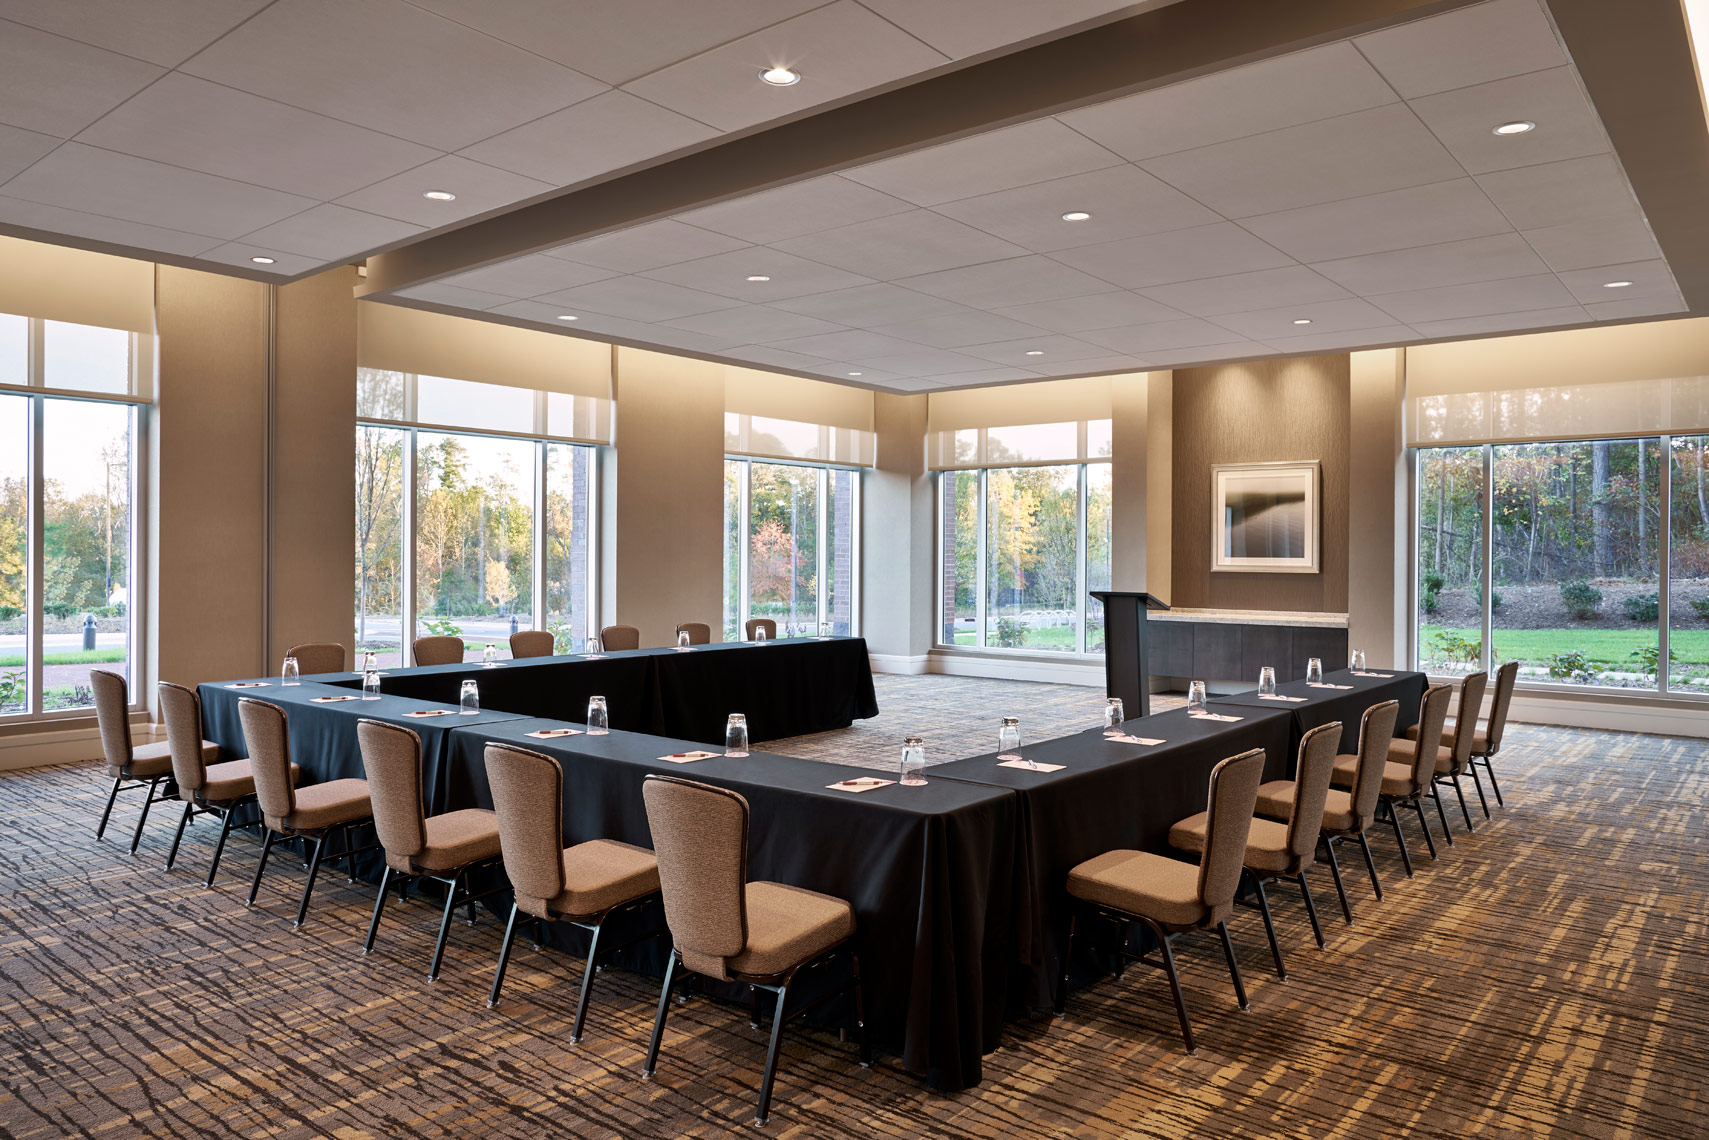 StateView-Hotel-Meeting-1